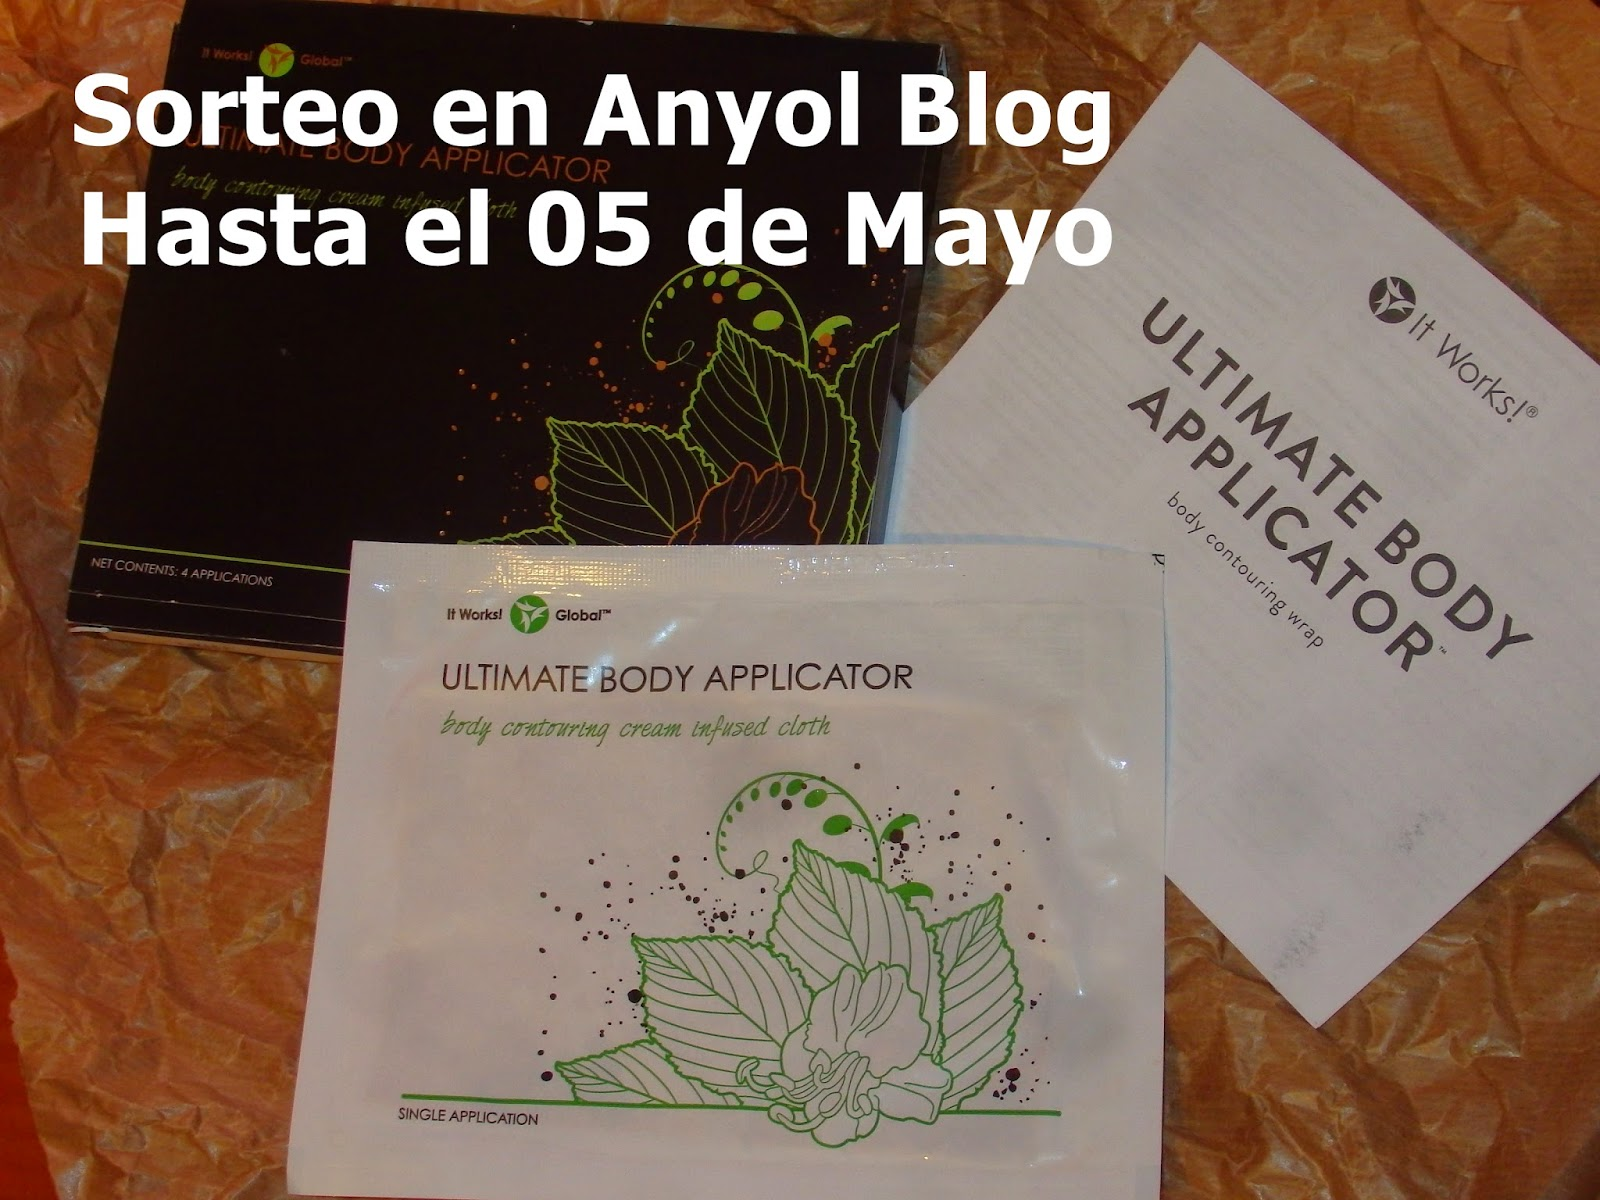 Ganadora del Sorteo de un Ultimate Body Applicator. Un Parche Reductor